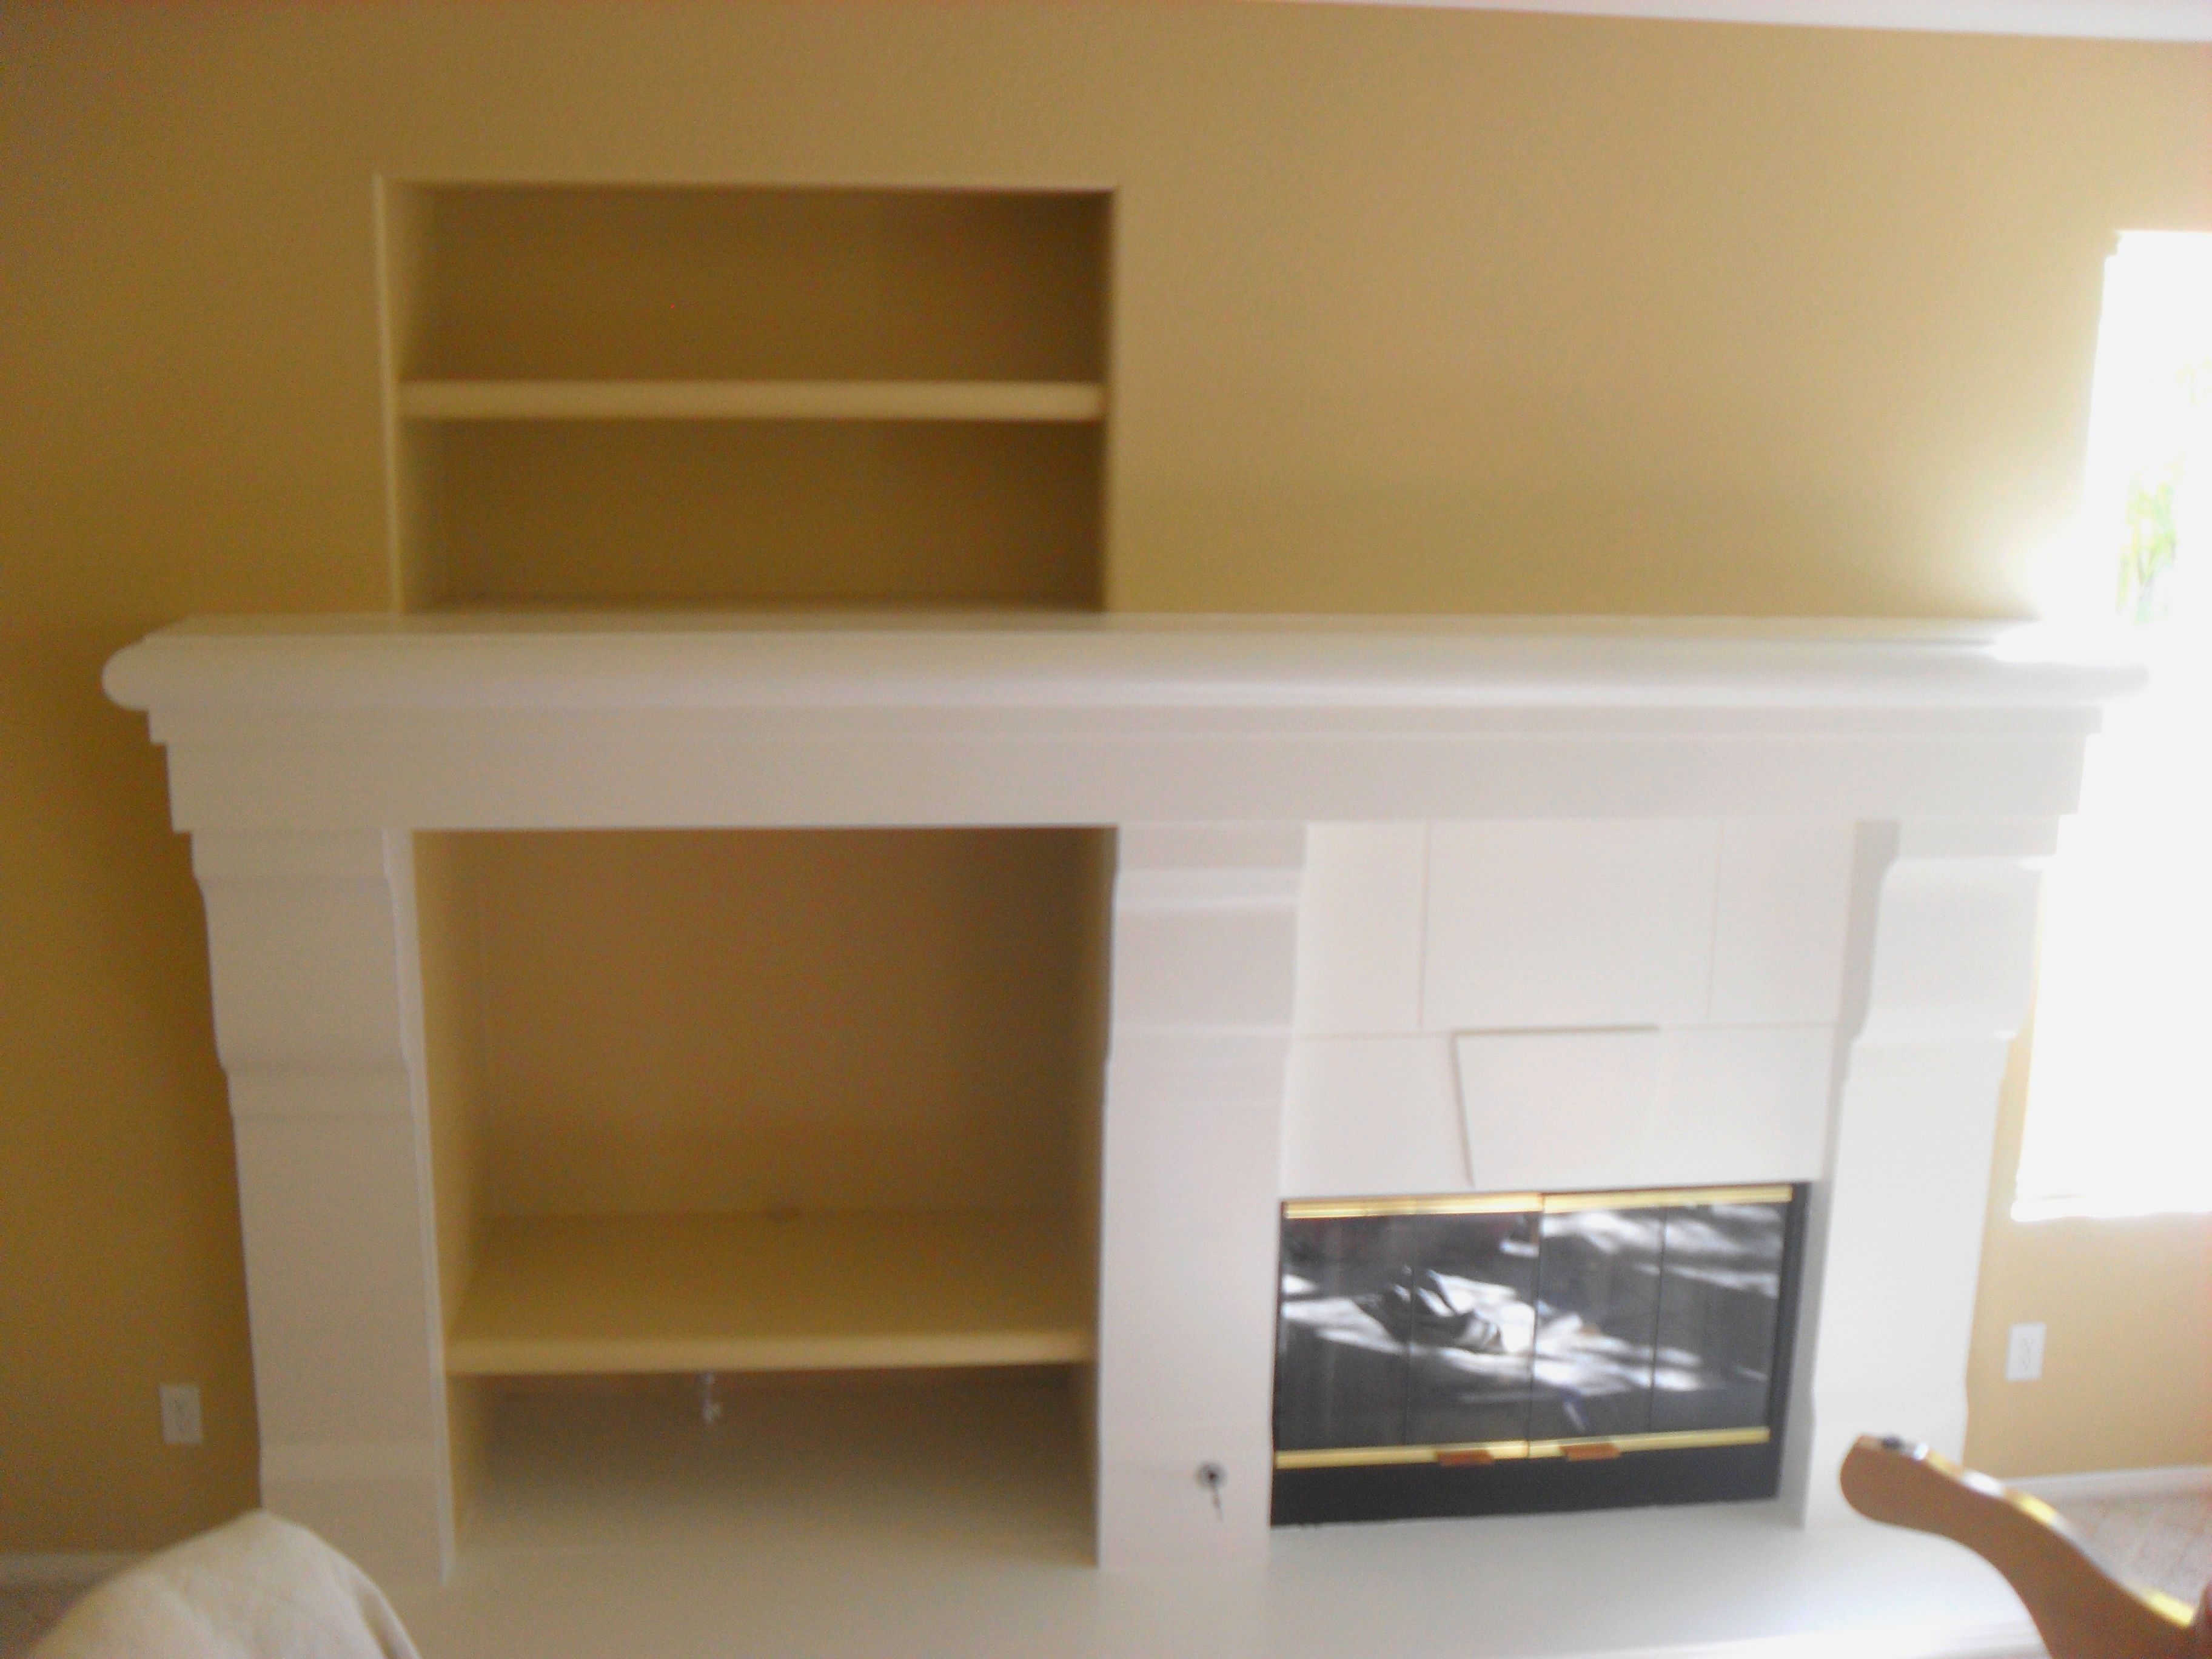 Oil Based Paint Fireplace Painting Ideas